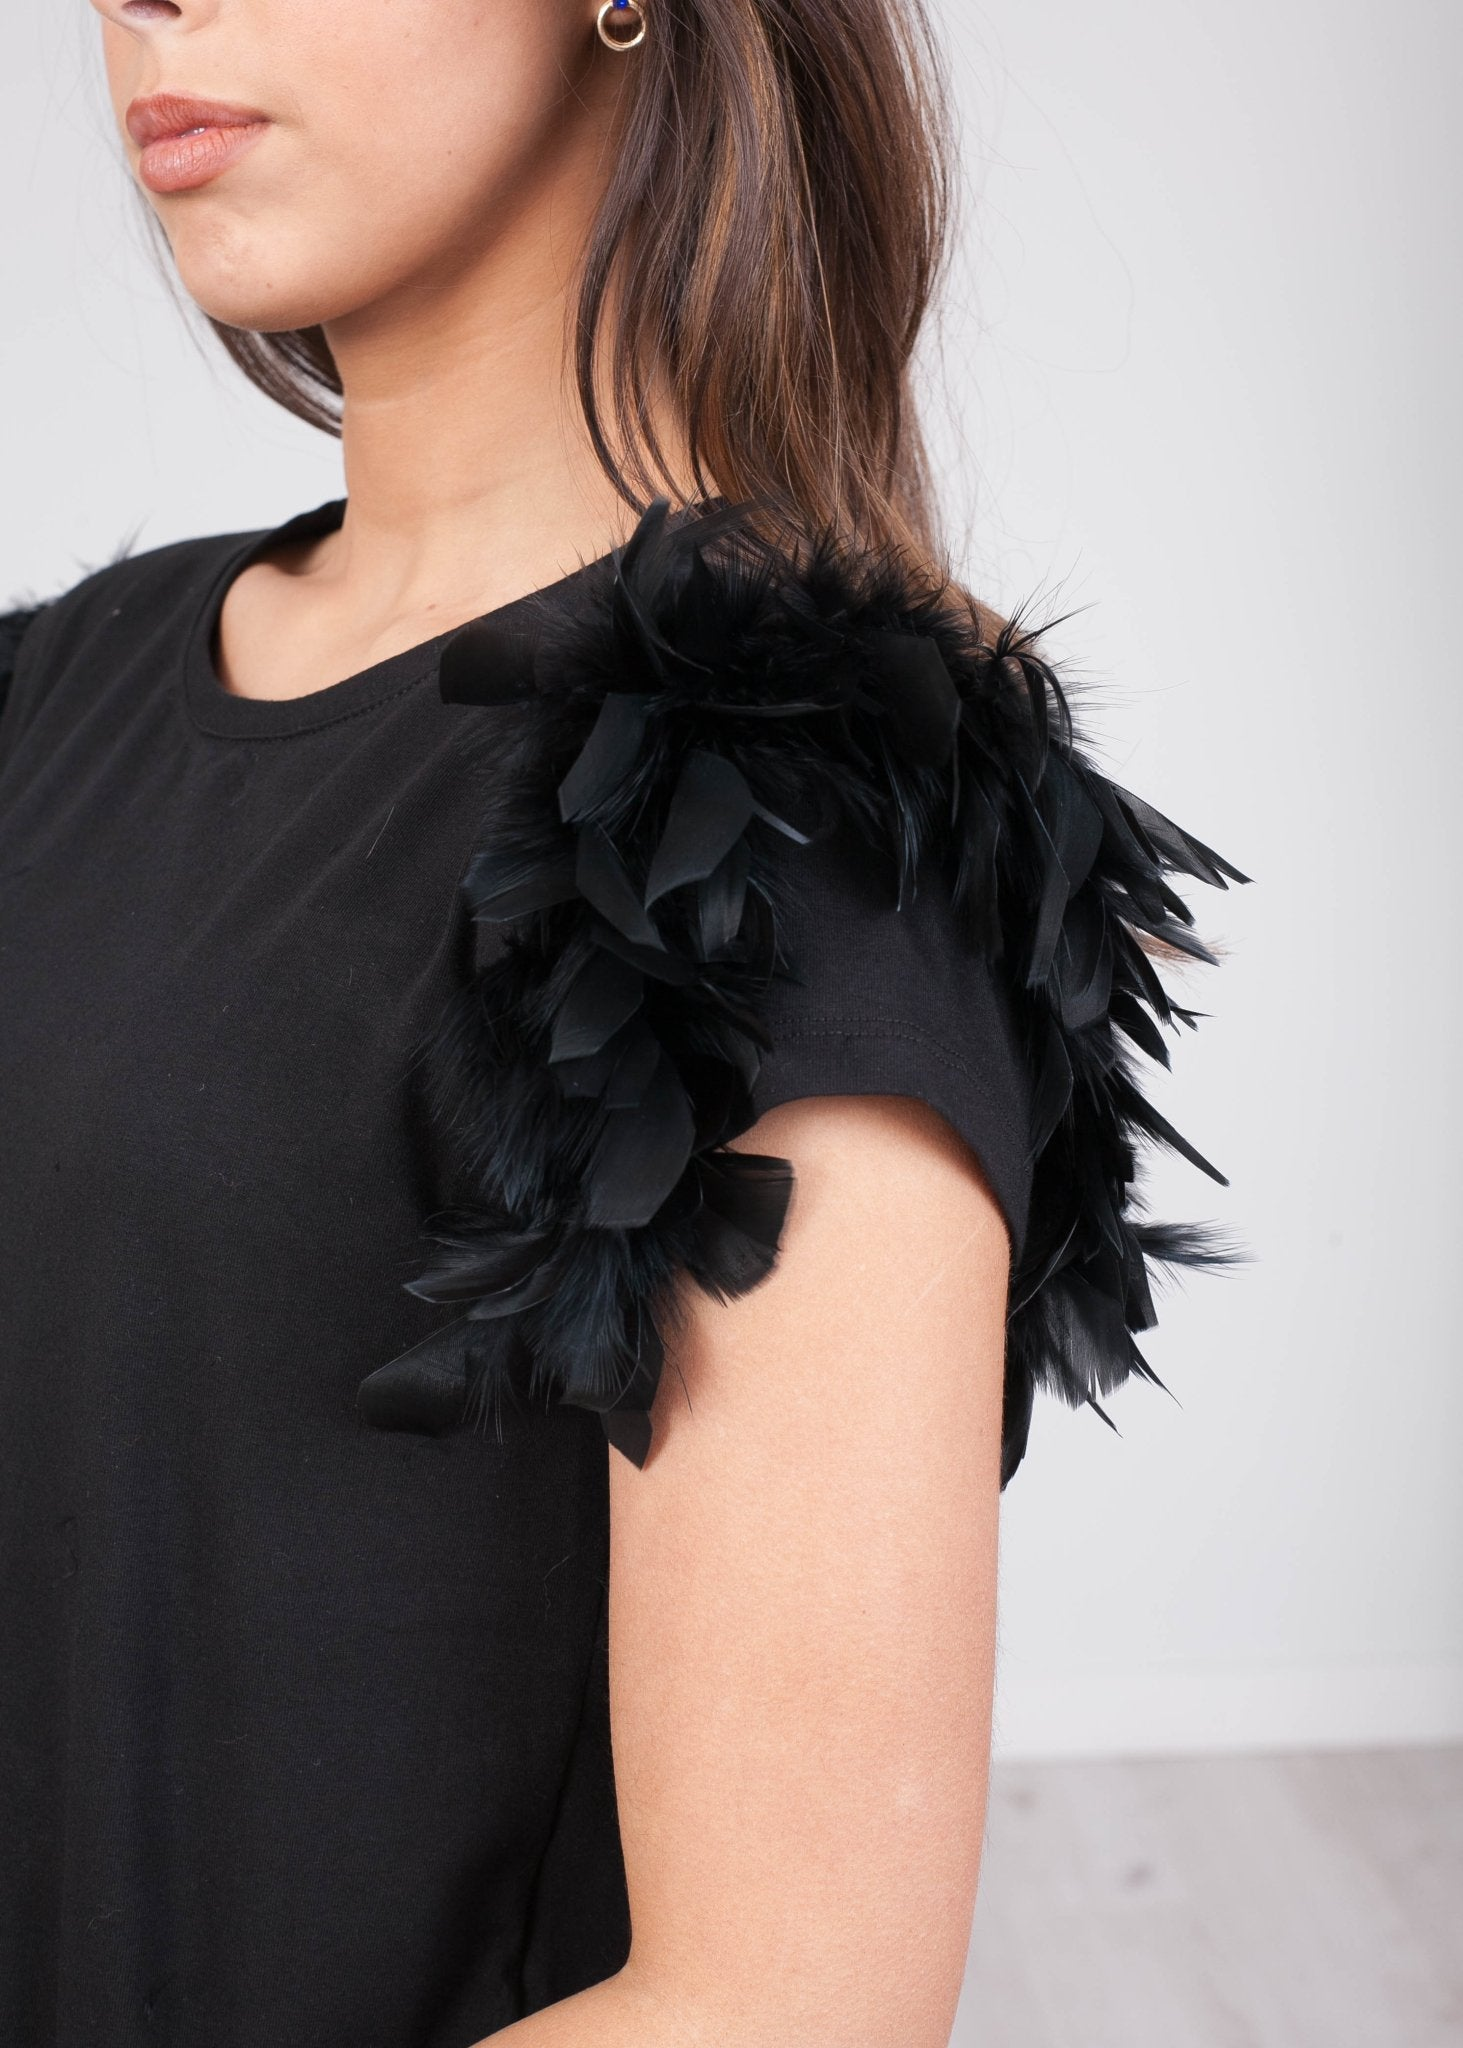 Rita Black Faux Feather Tee - The Walk in Wardrobe